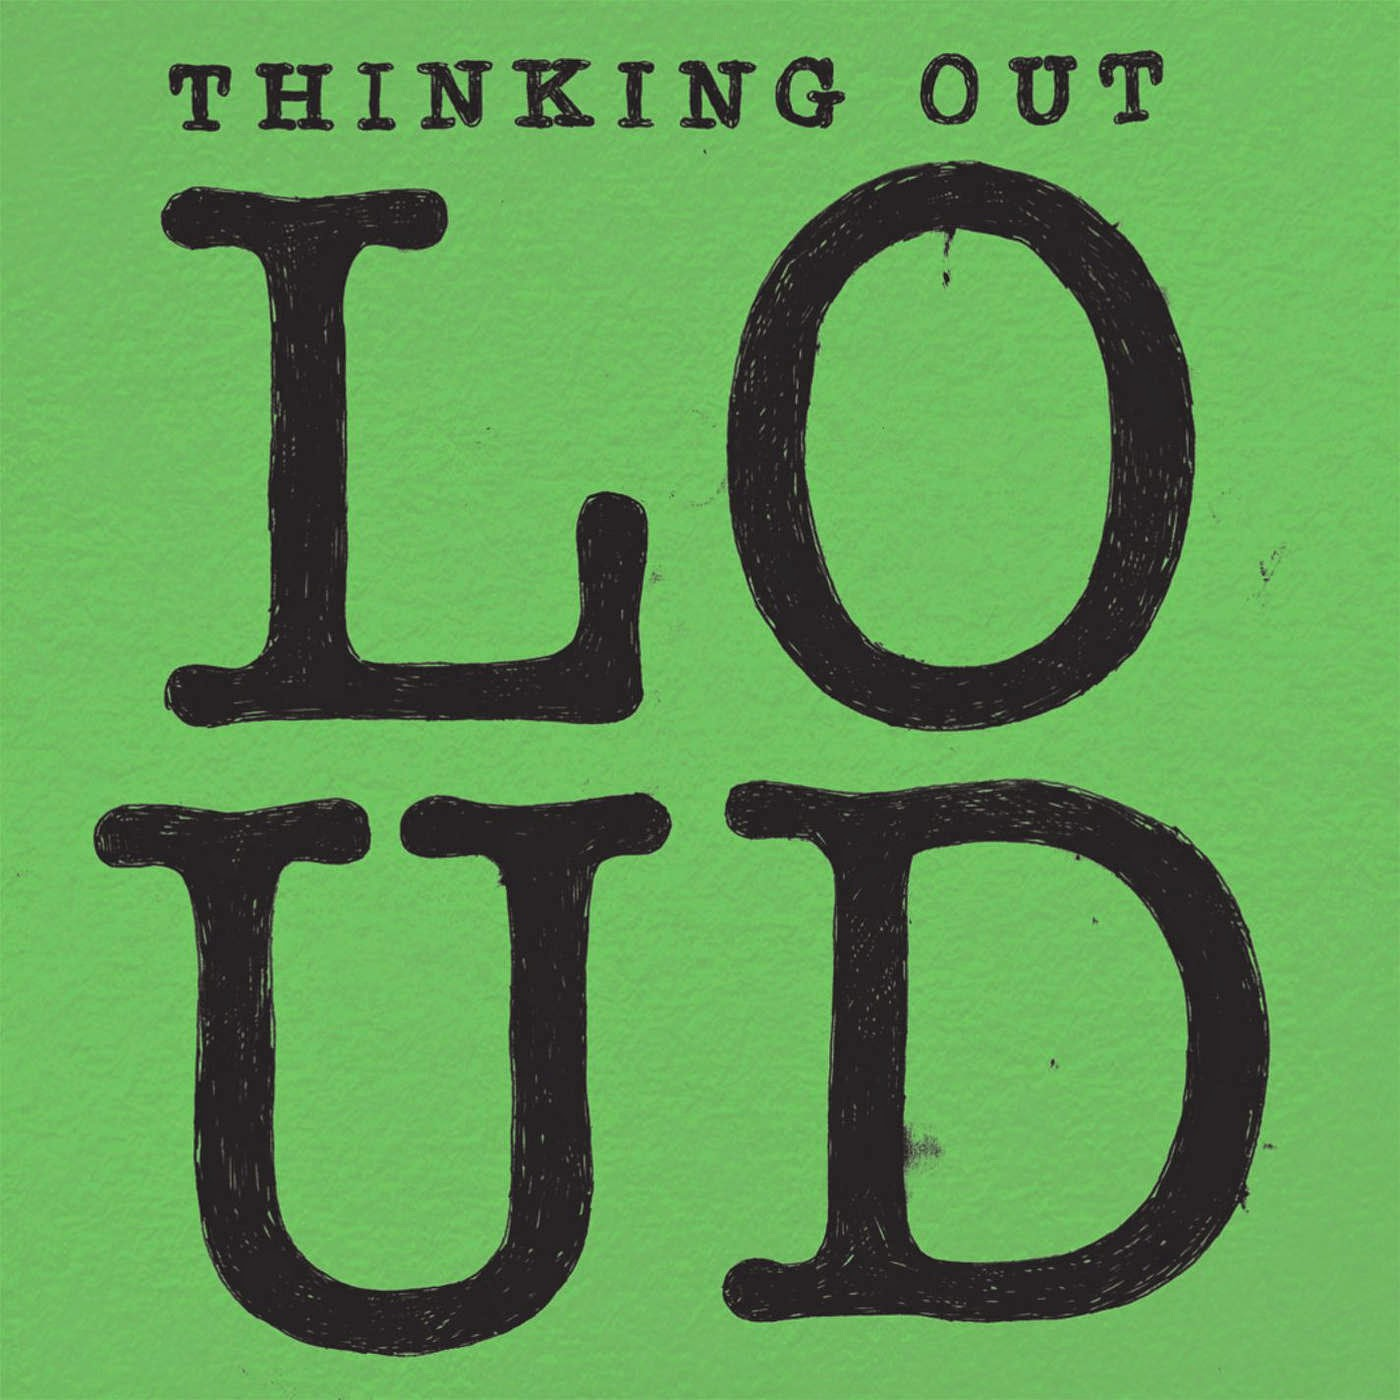 Ed Sheeran - Thinking Out Loud (Alex Adair Remix) - Single Cover